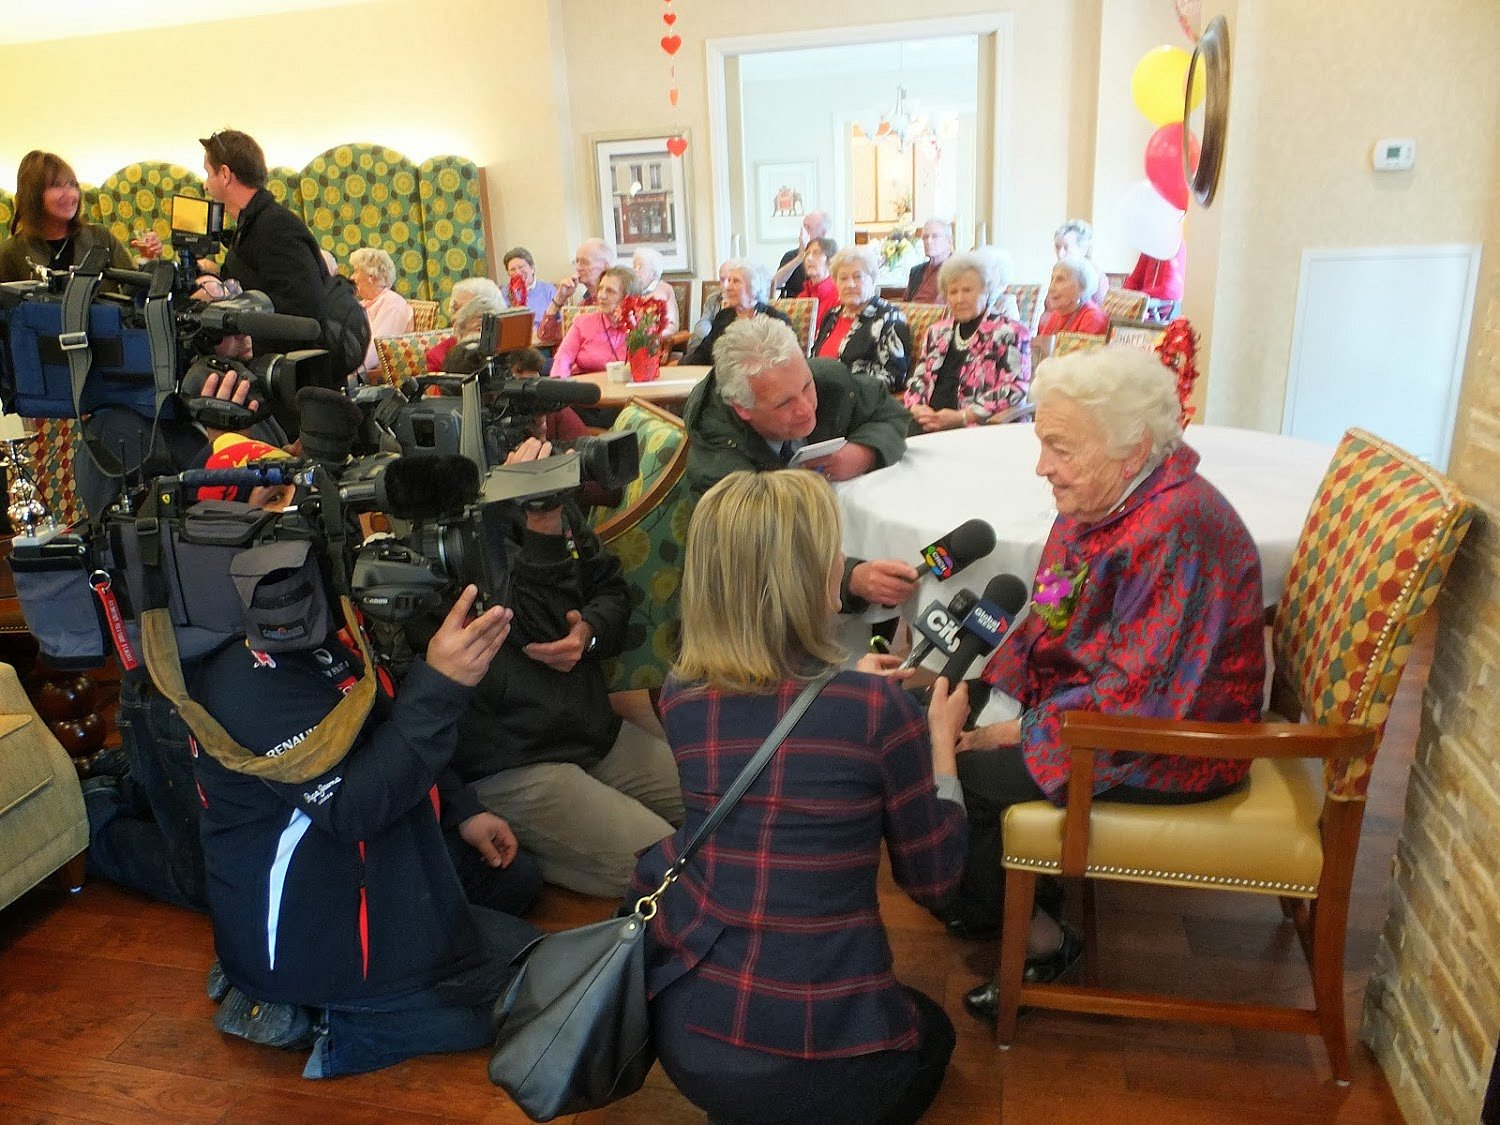 Mayor Hazel McCallion being interviewed by CHCH, City TV, Global News at Walden Circle on Feb. 14, 2014